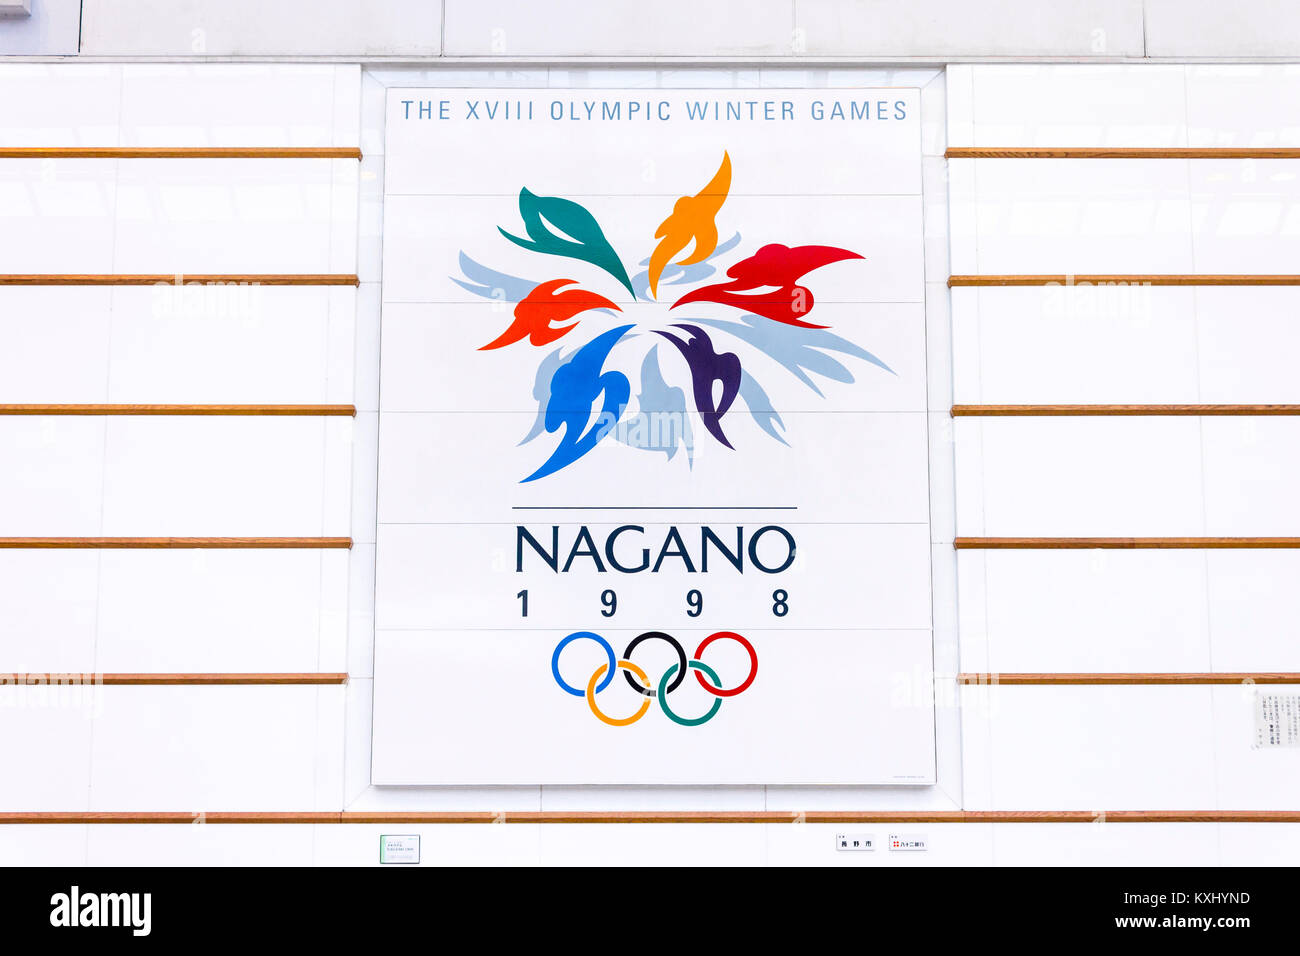 Tile painted with the snowflower emblem of Nagano XVIII Olympic Winter Games at Nagano train station, Japan Stock Photo